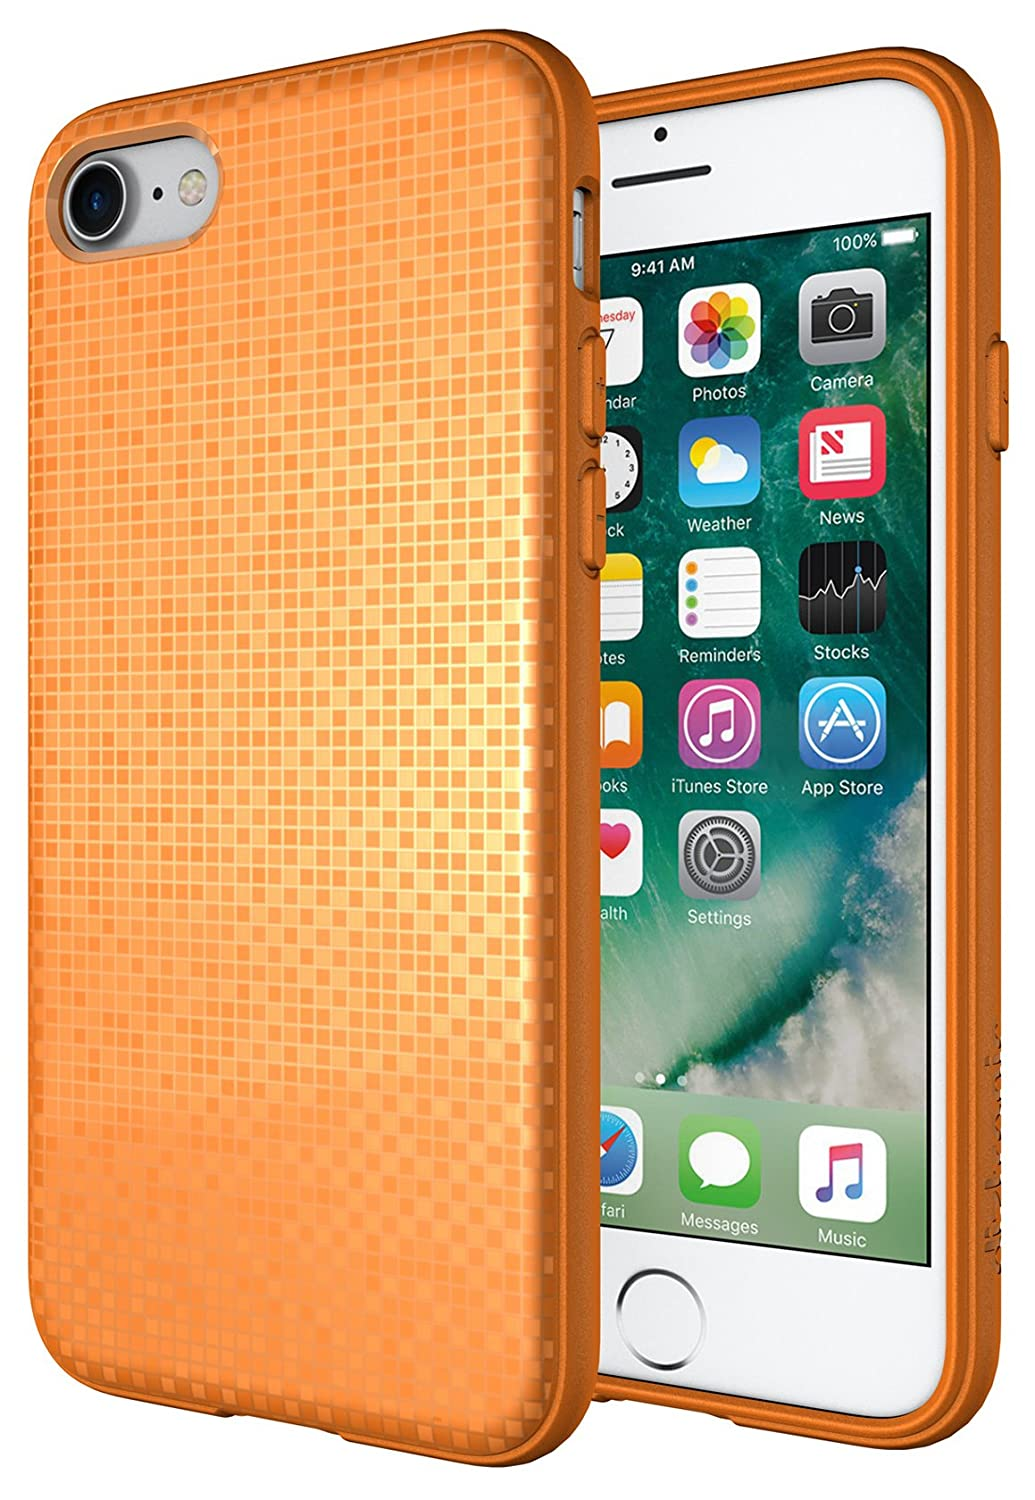 outlet store 38553 368bb iPhone 7 Case, Diztronic Pixlee Soft Touch Slim-Fit Flexible TPU Case for  Apple iPhone 7 (Pixlee Orange Pastel) - Retail Packaging